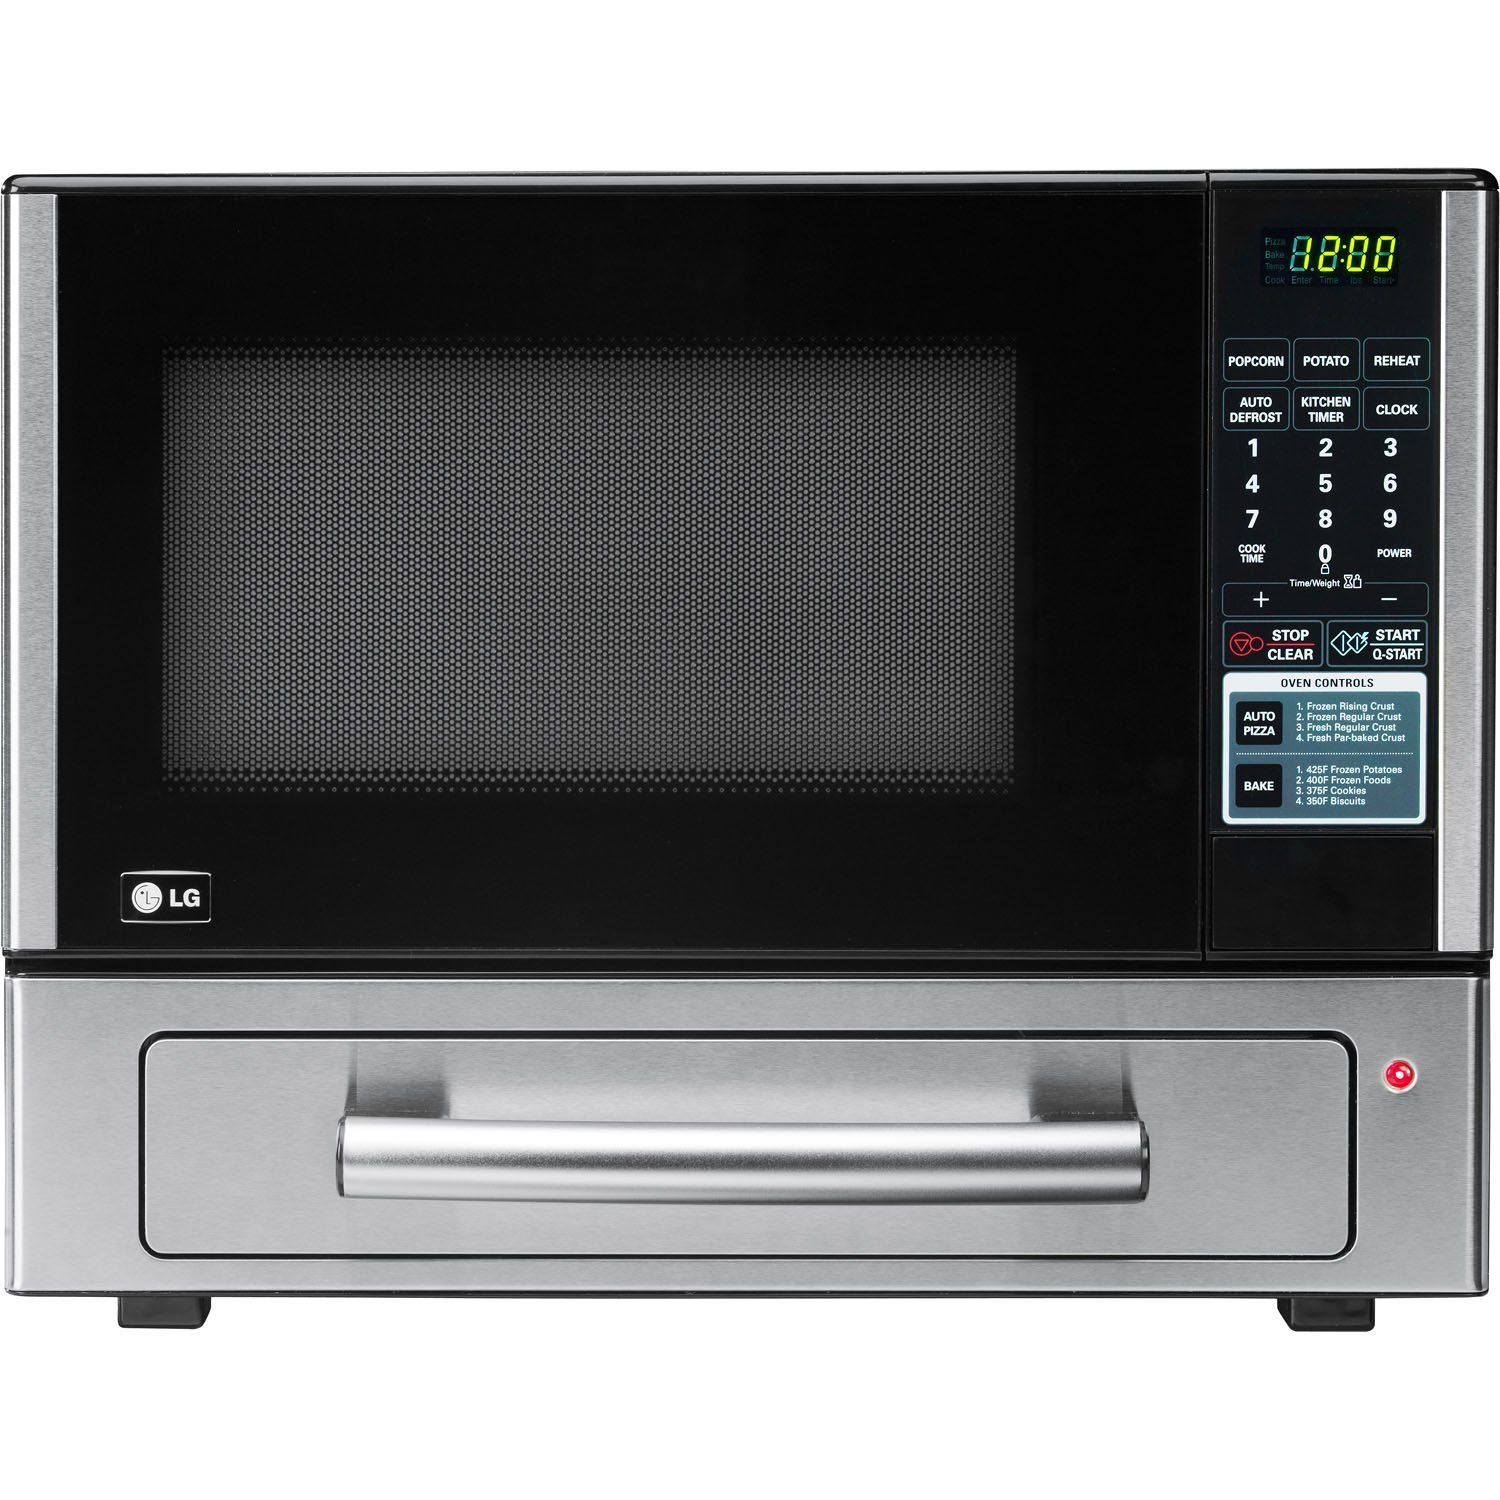 Pizza Maker And Microwave Oven Combo: Best Microwave Ovens